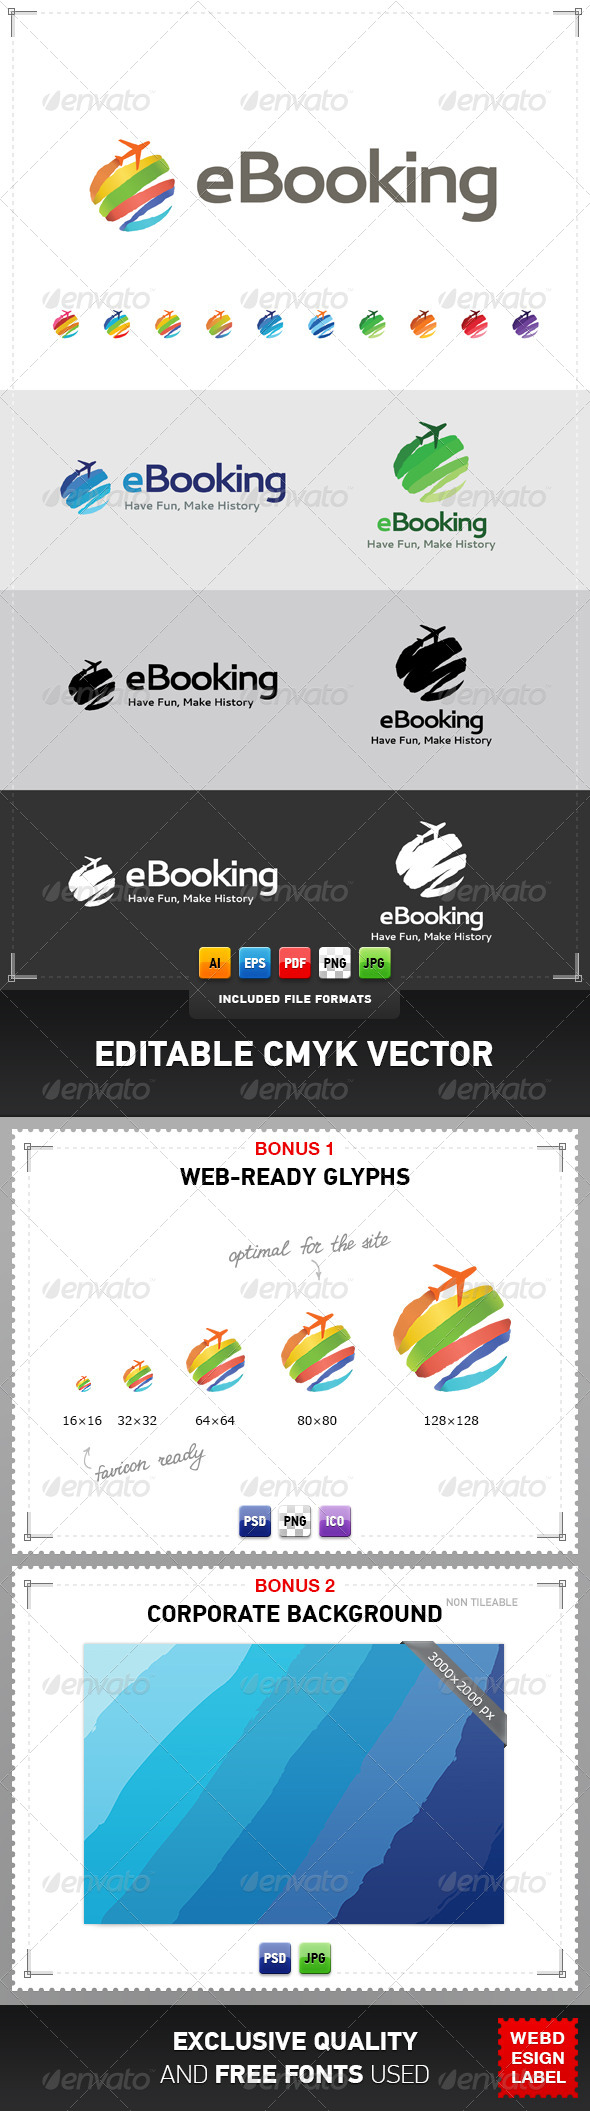 eBooking Logo - Objects Logo Templates